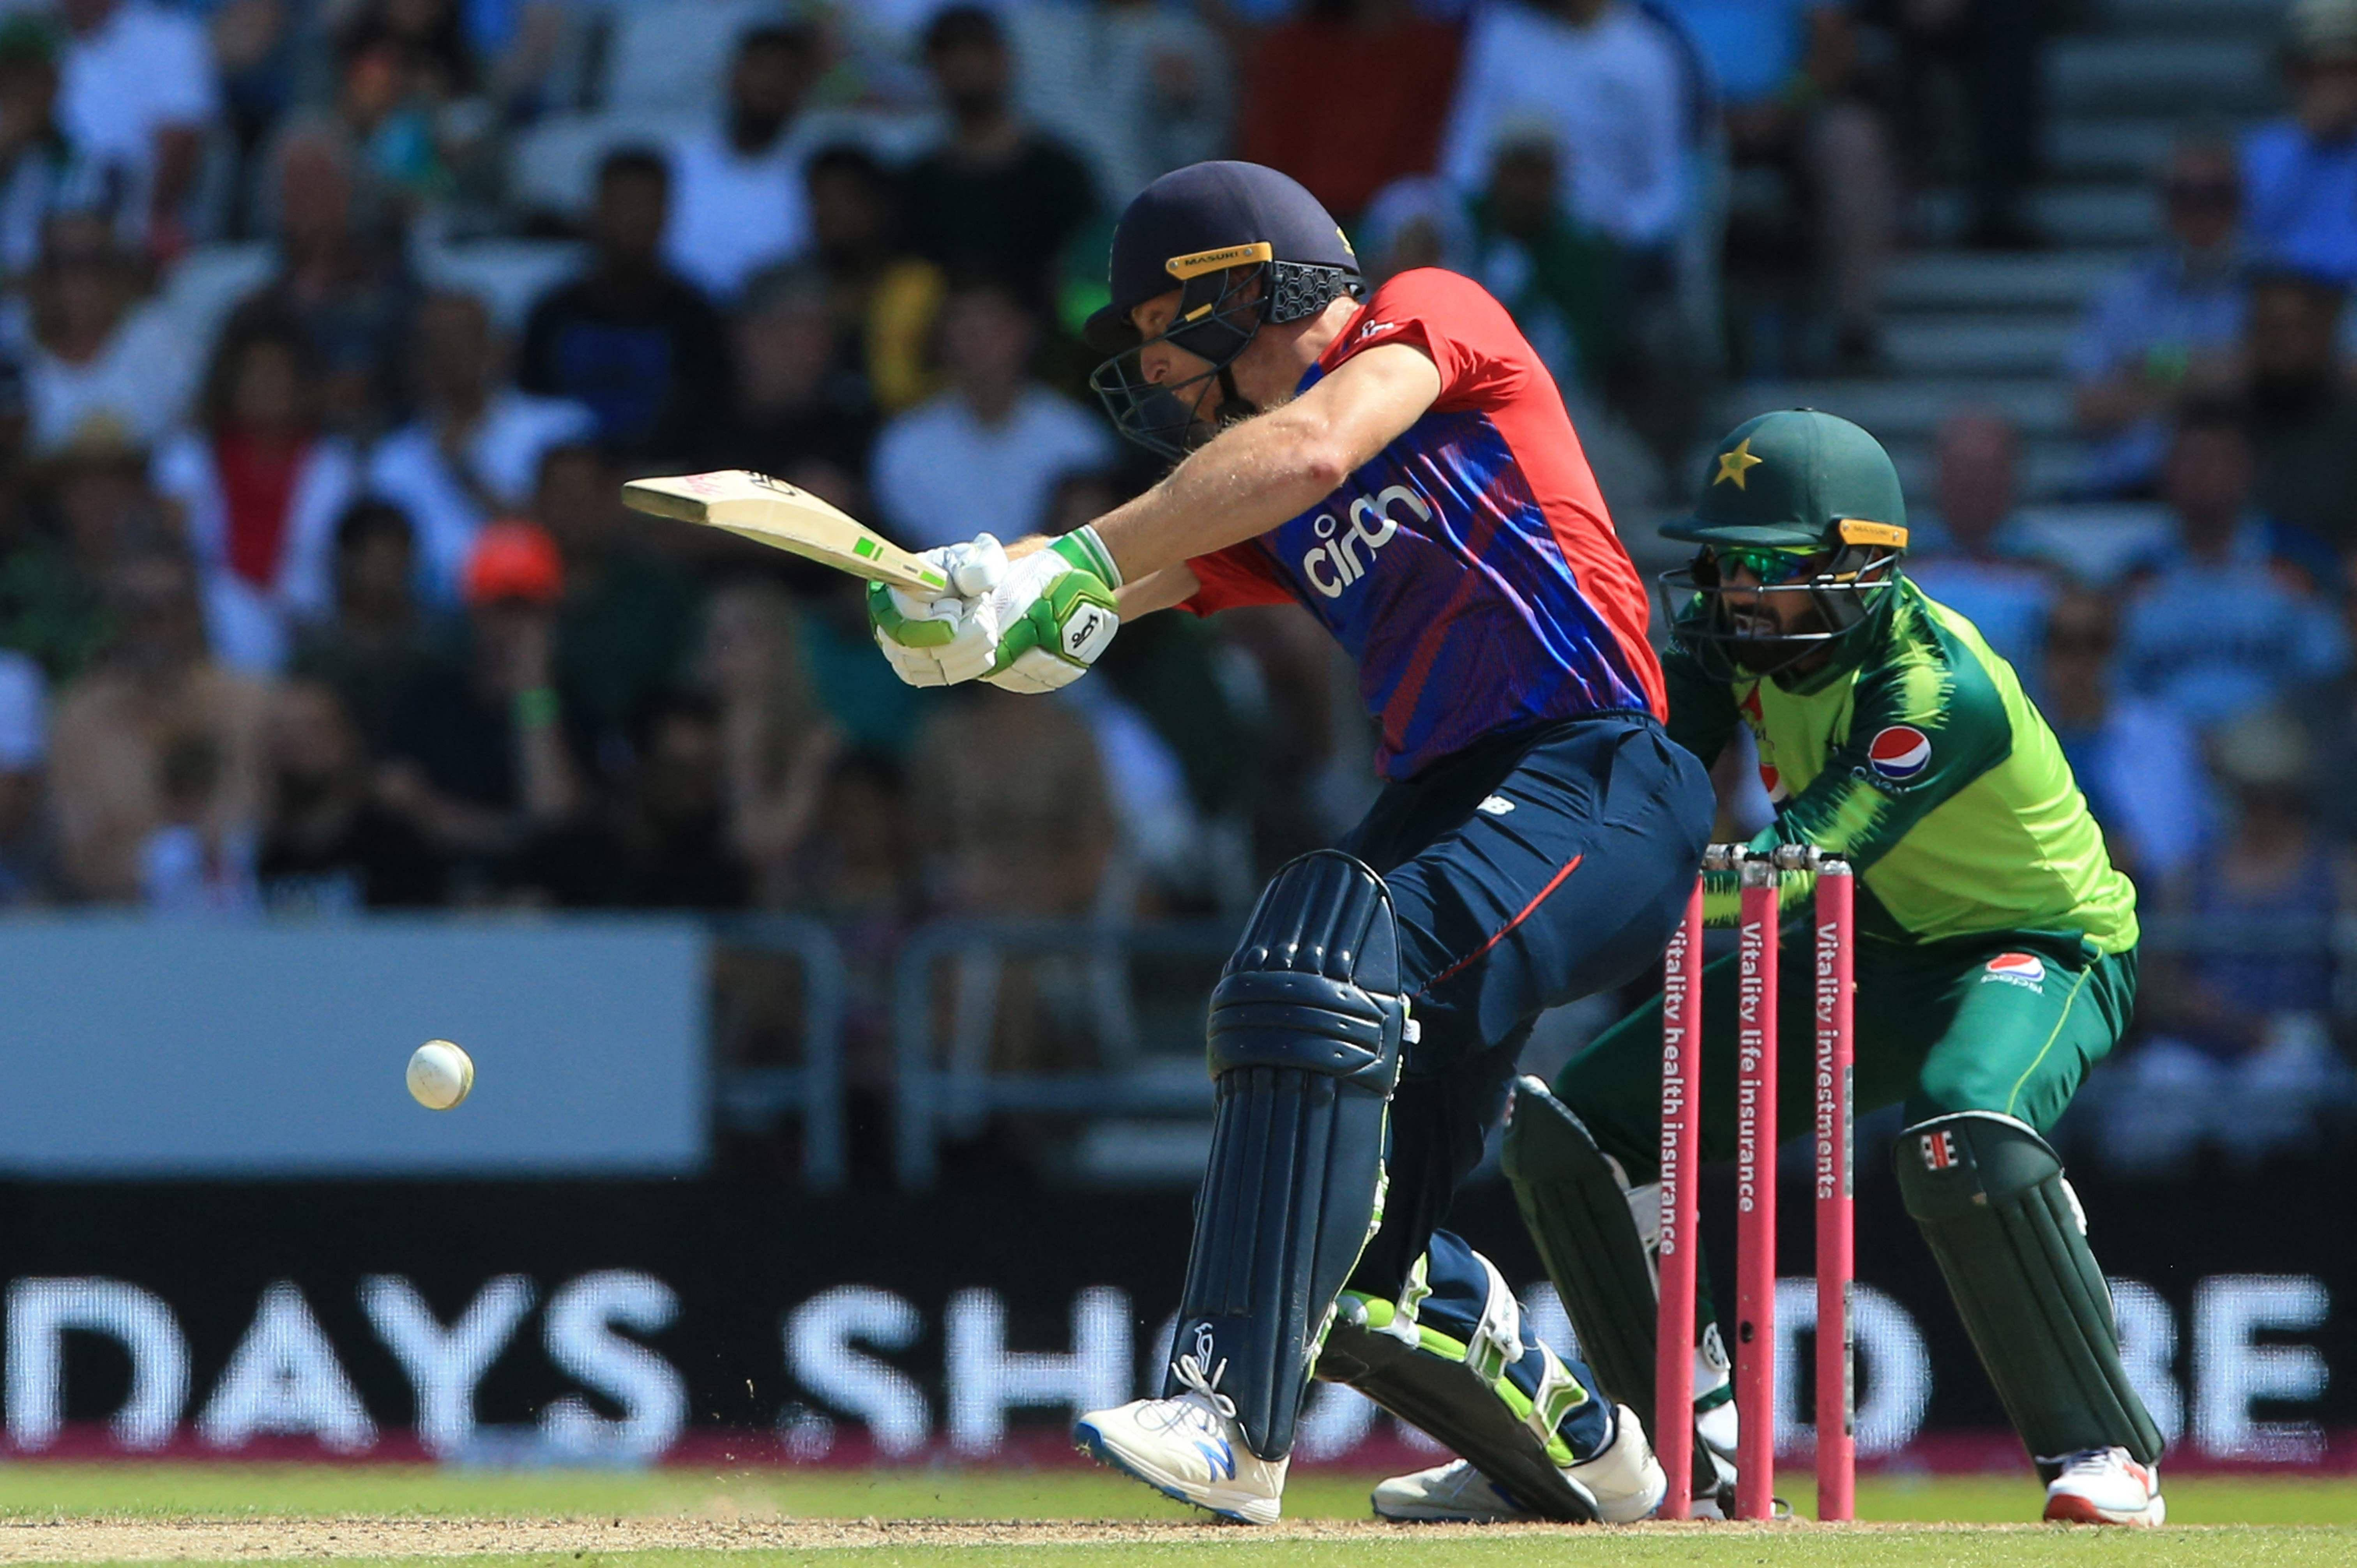 Jos Buttler hits a shot during the second T20 international against Pakistan. — AFP Photo